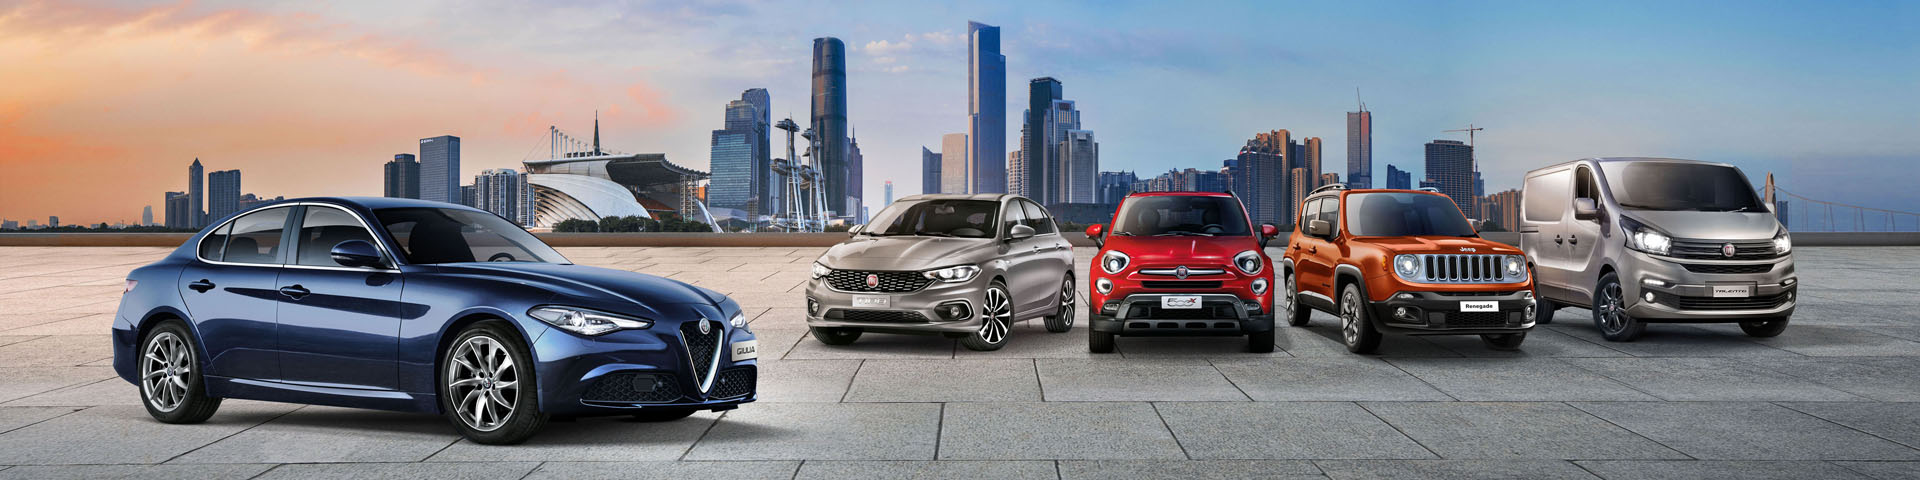 Fiat_collection